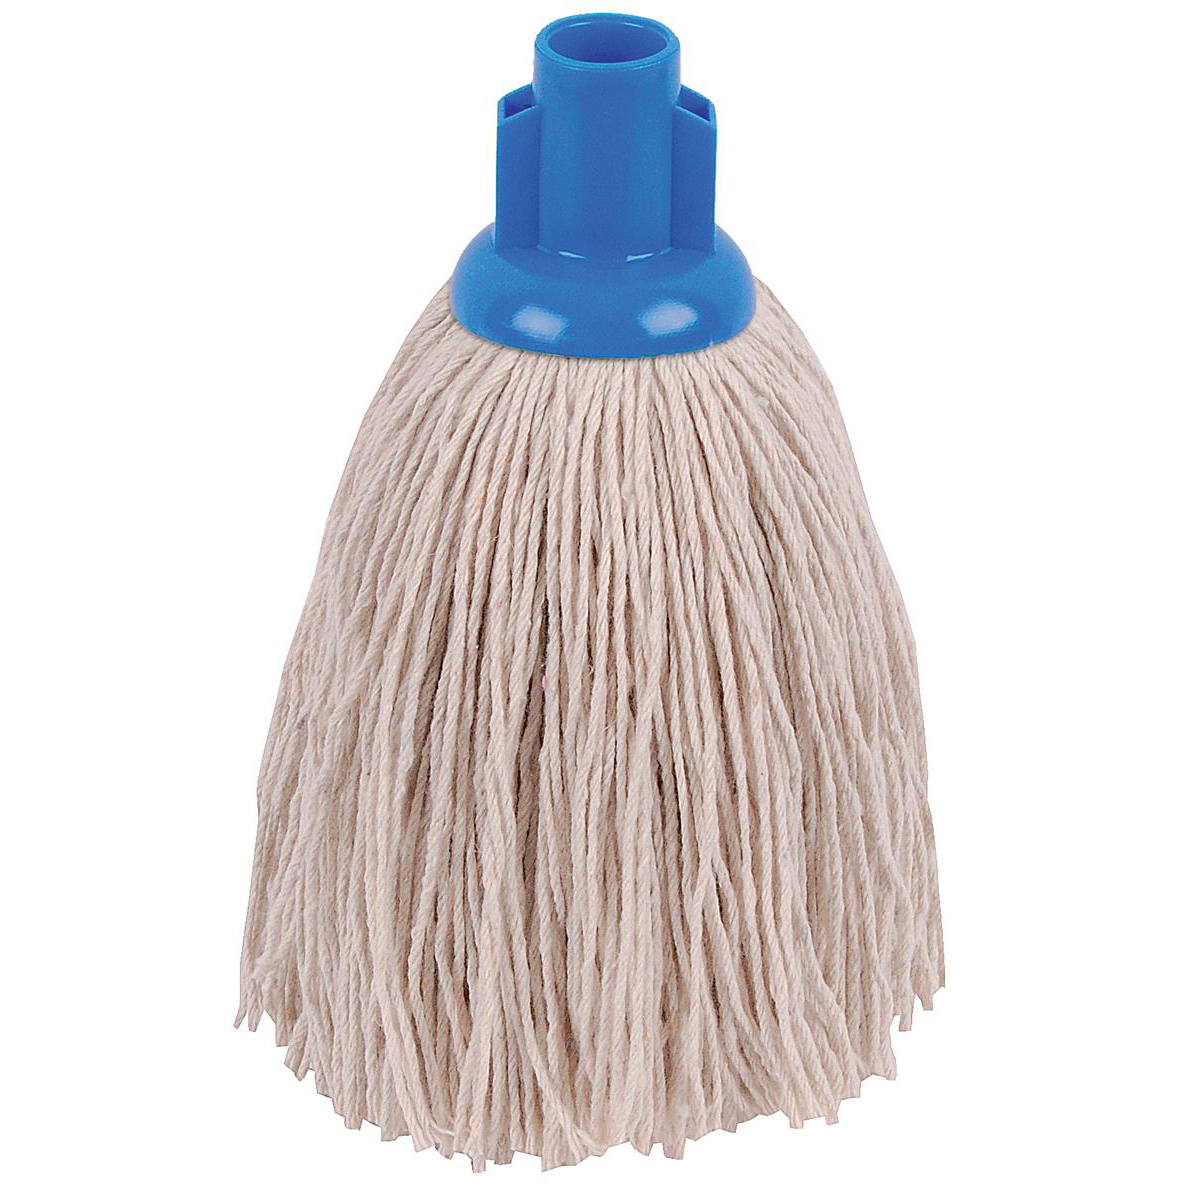 Robert Scott & Sons Twine Socket Mop for Rough Surfaces 12oz Blue Ref 101852BLUE [Pack 10]